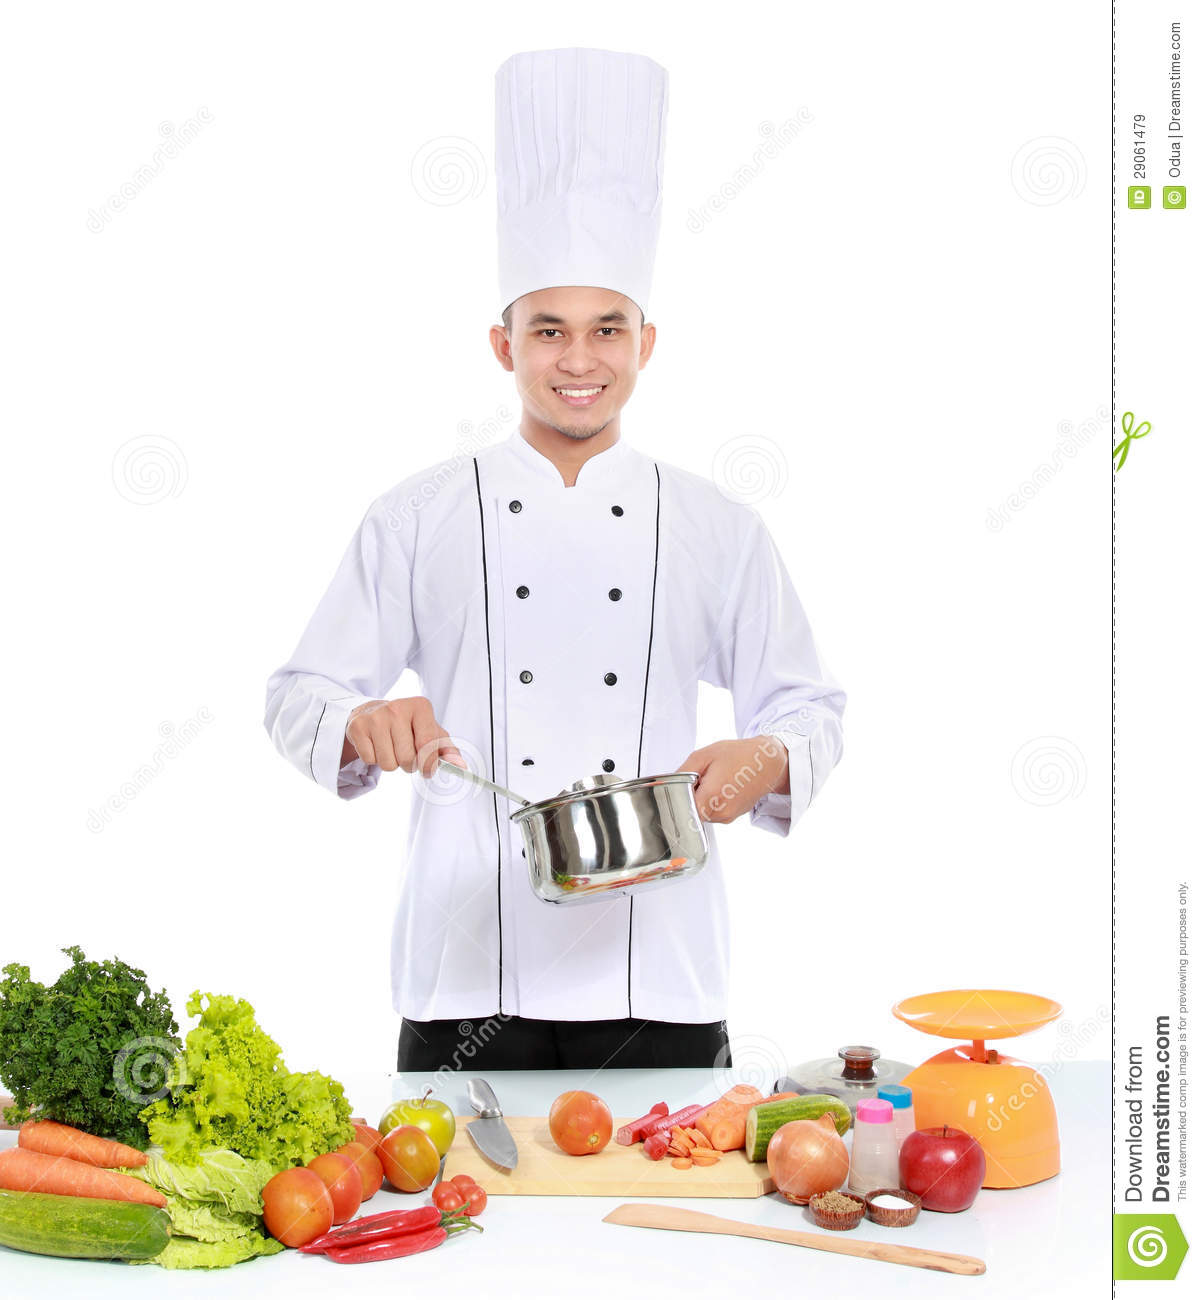 male chef cooking royalty free stock images image 29061479. Black Bedroom Furniture Sets. Home Design Ideas